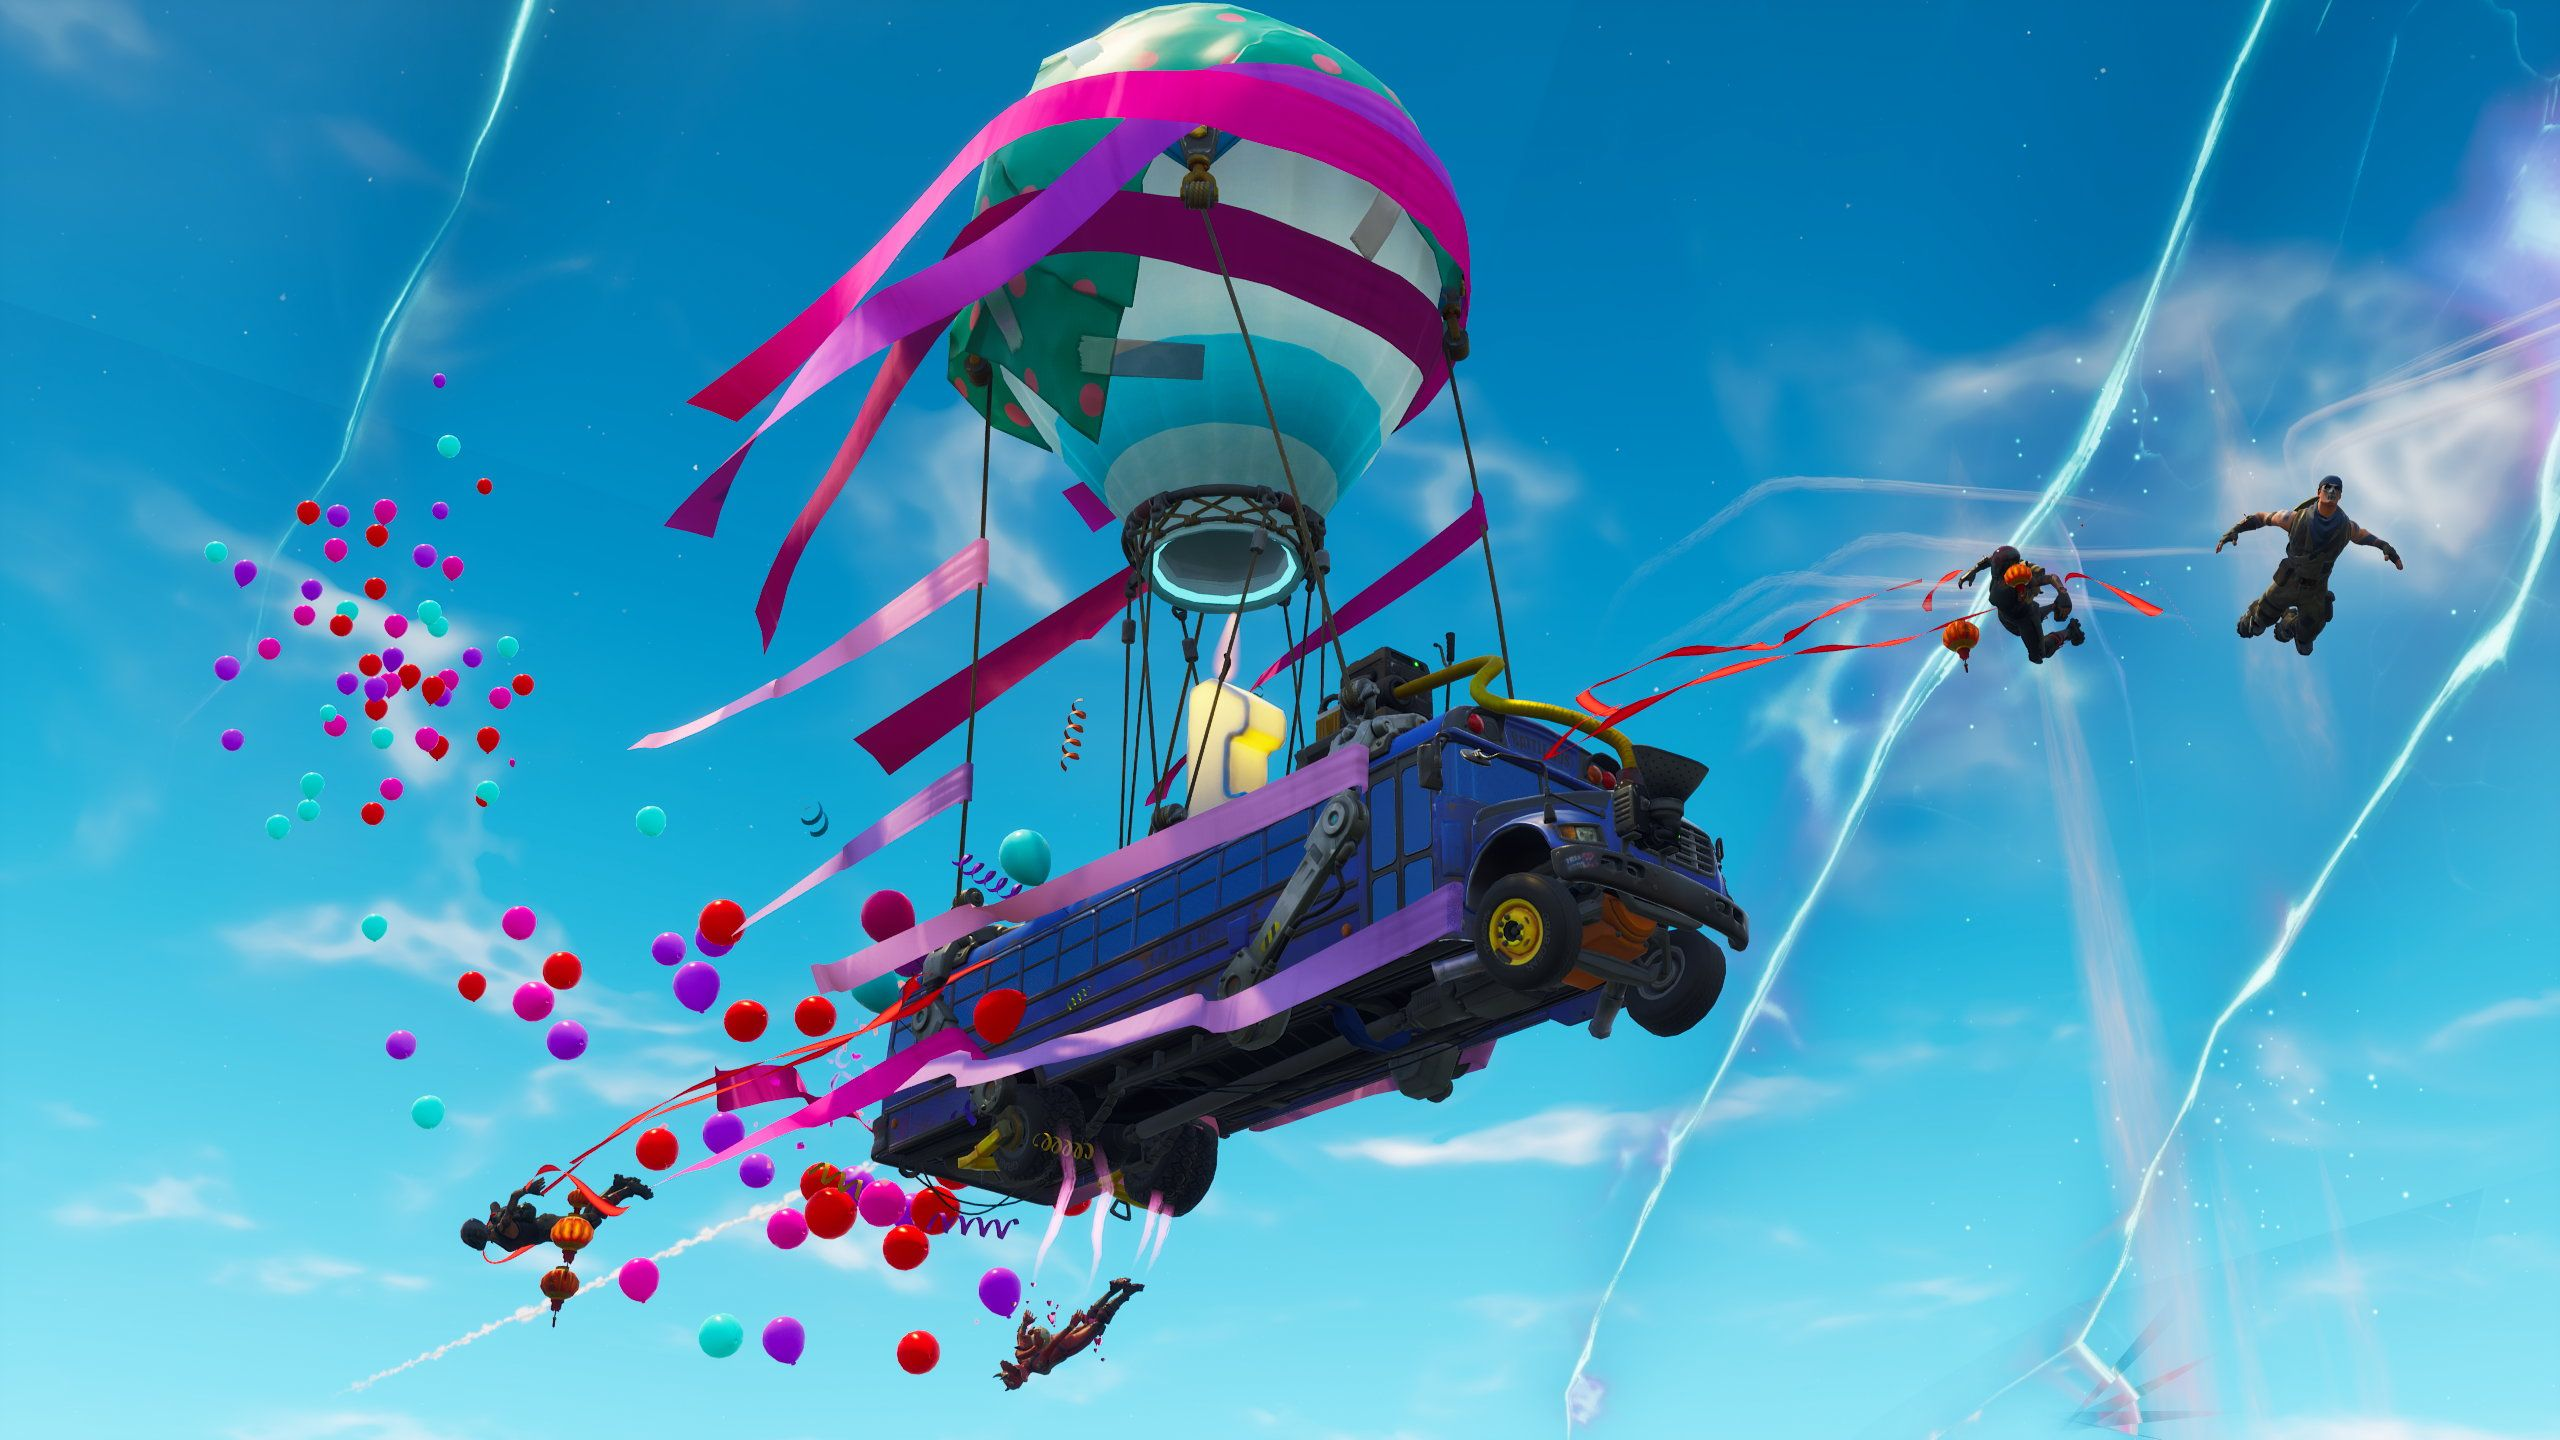 Battle Bus Customization Coming To Fortnite With Images